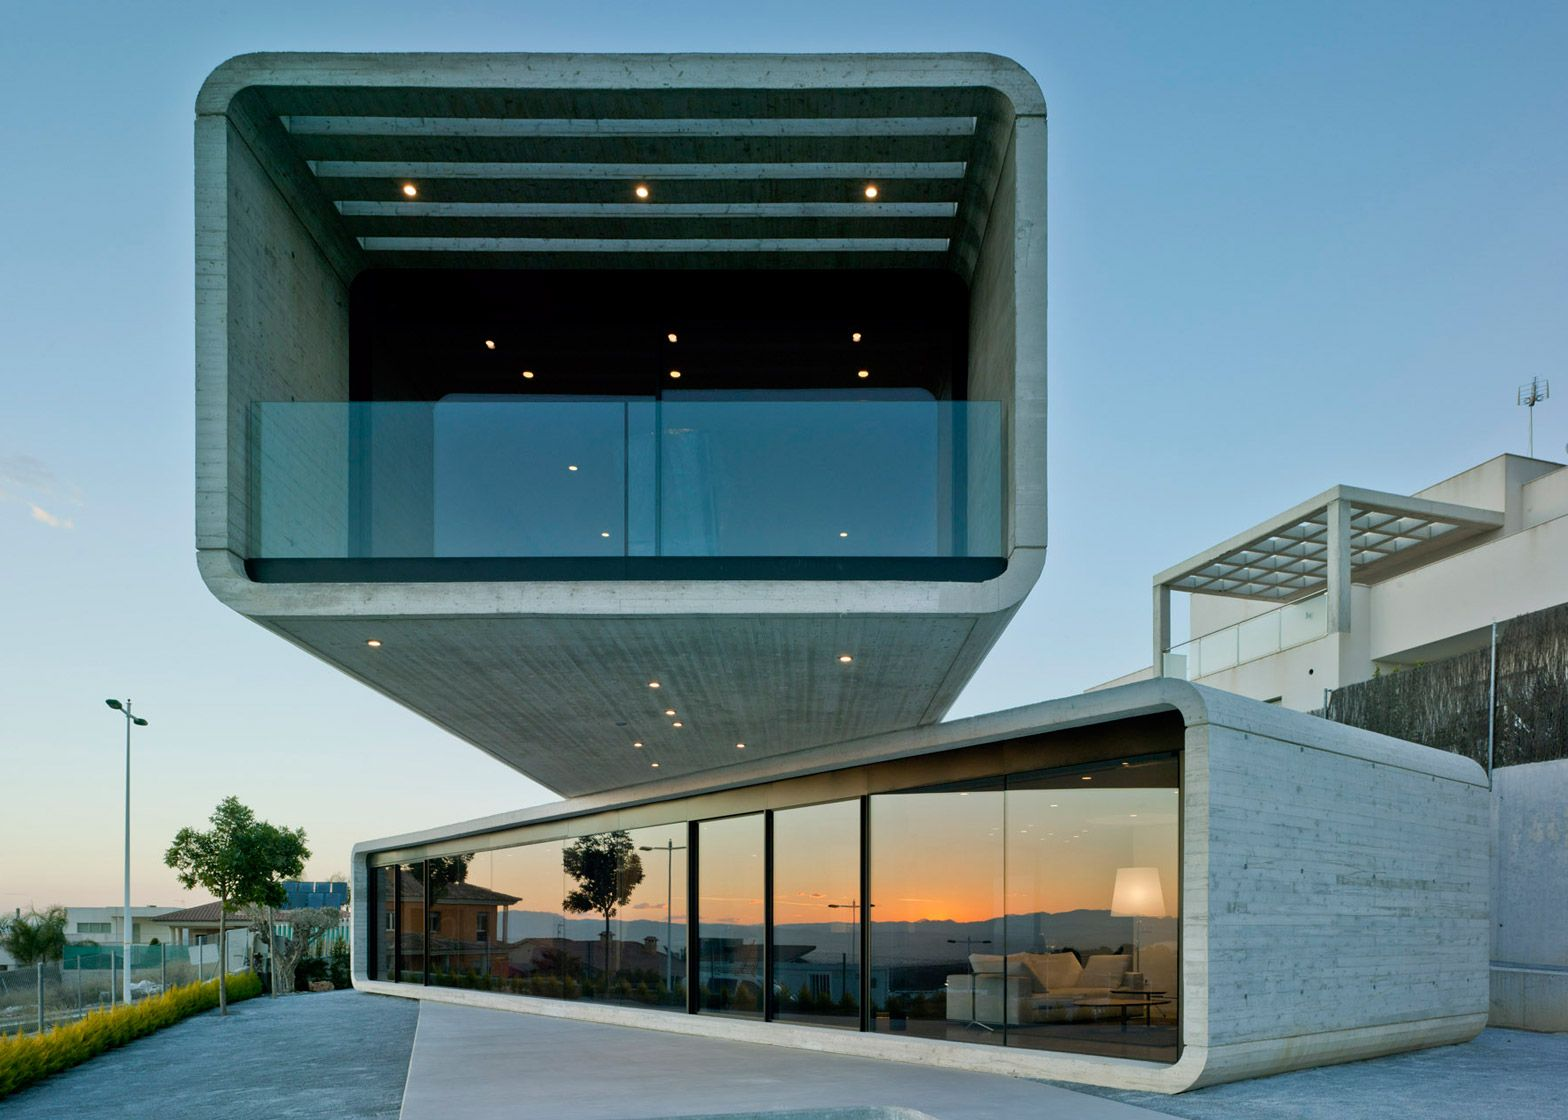 Clavel Arquitectos creates extreme concrete cantilever for Crossed House in Spain.